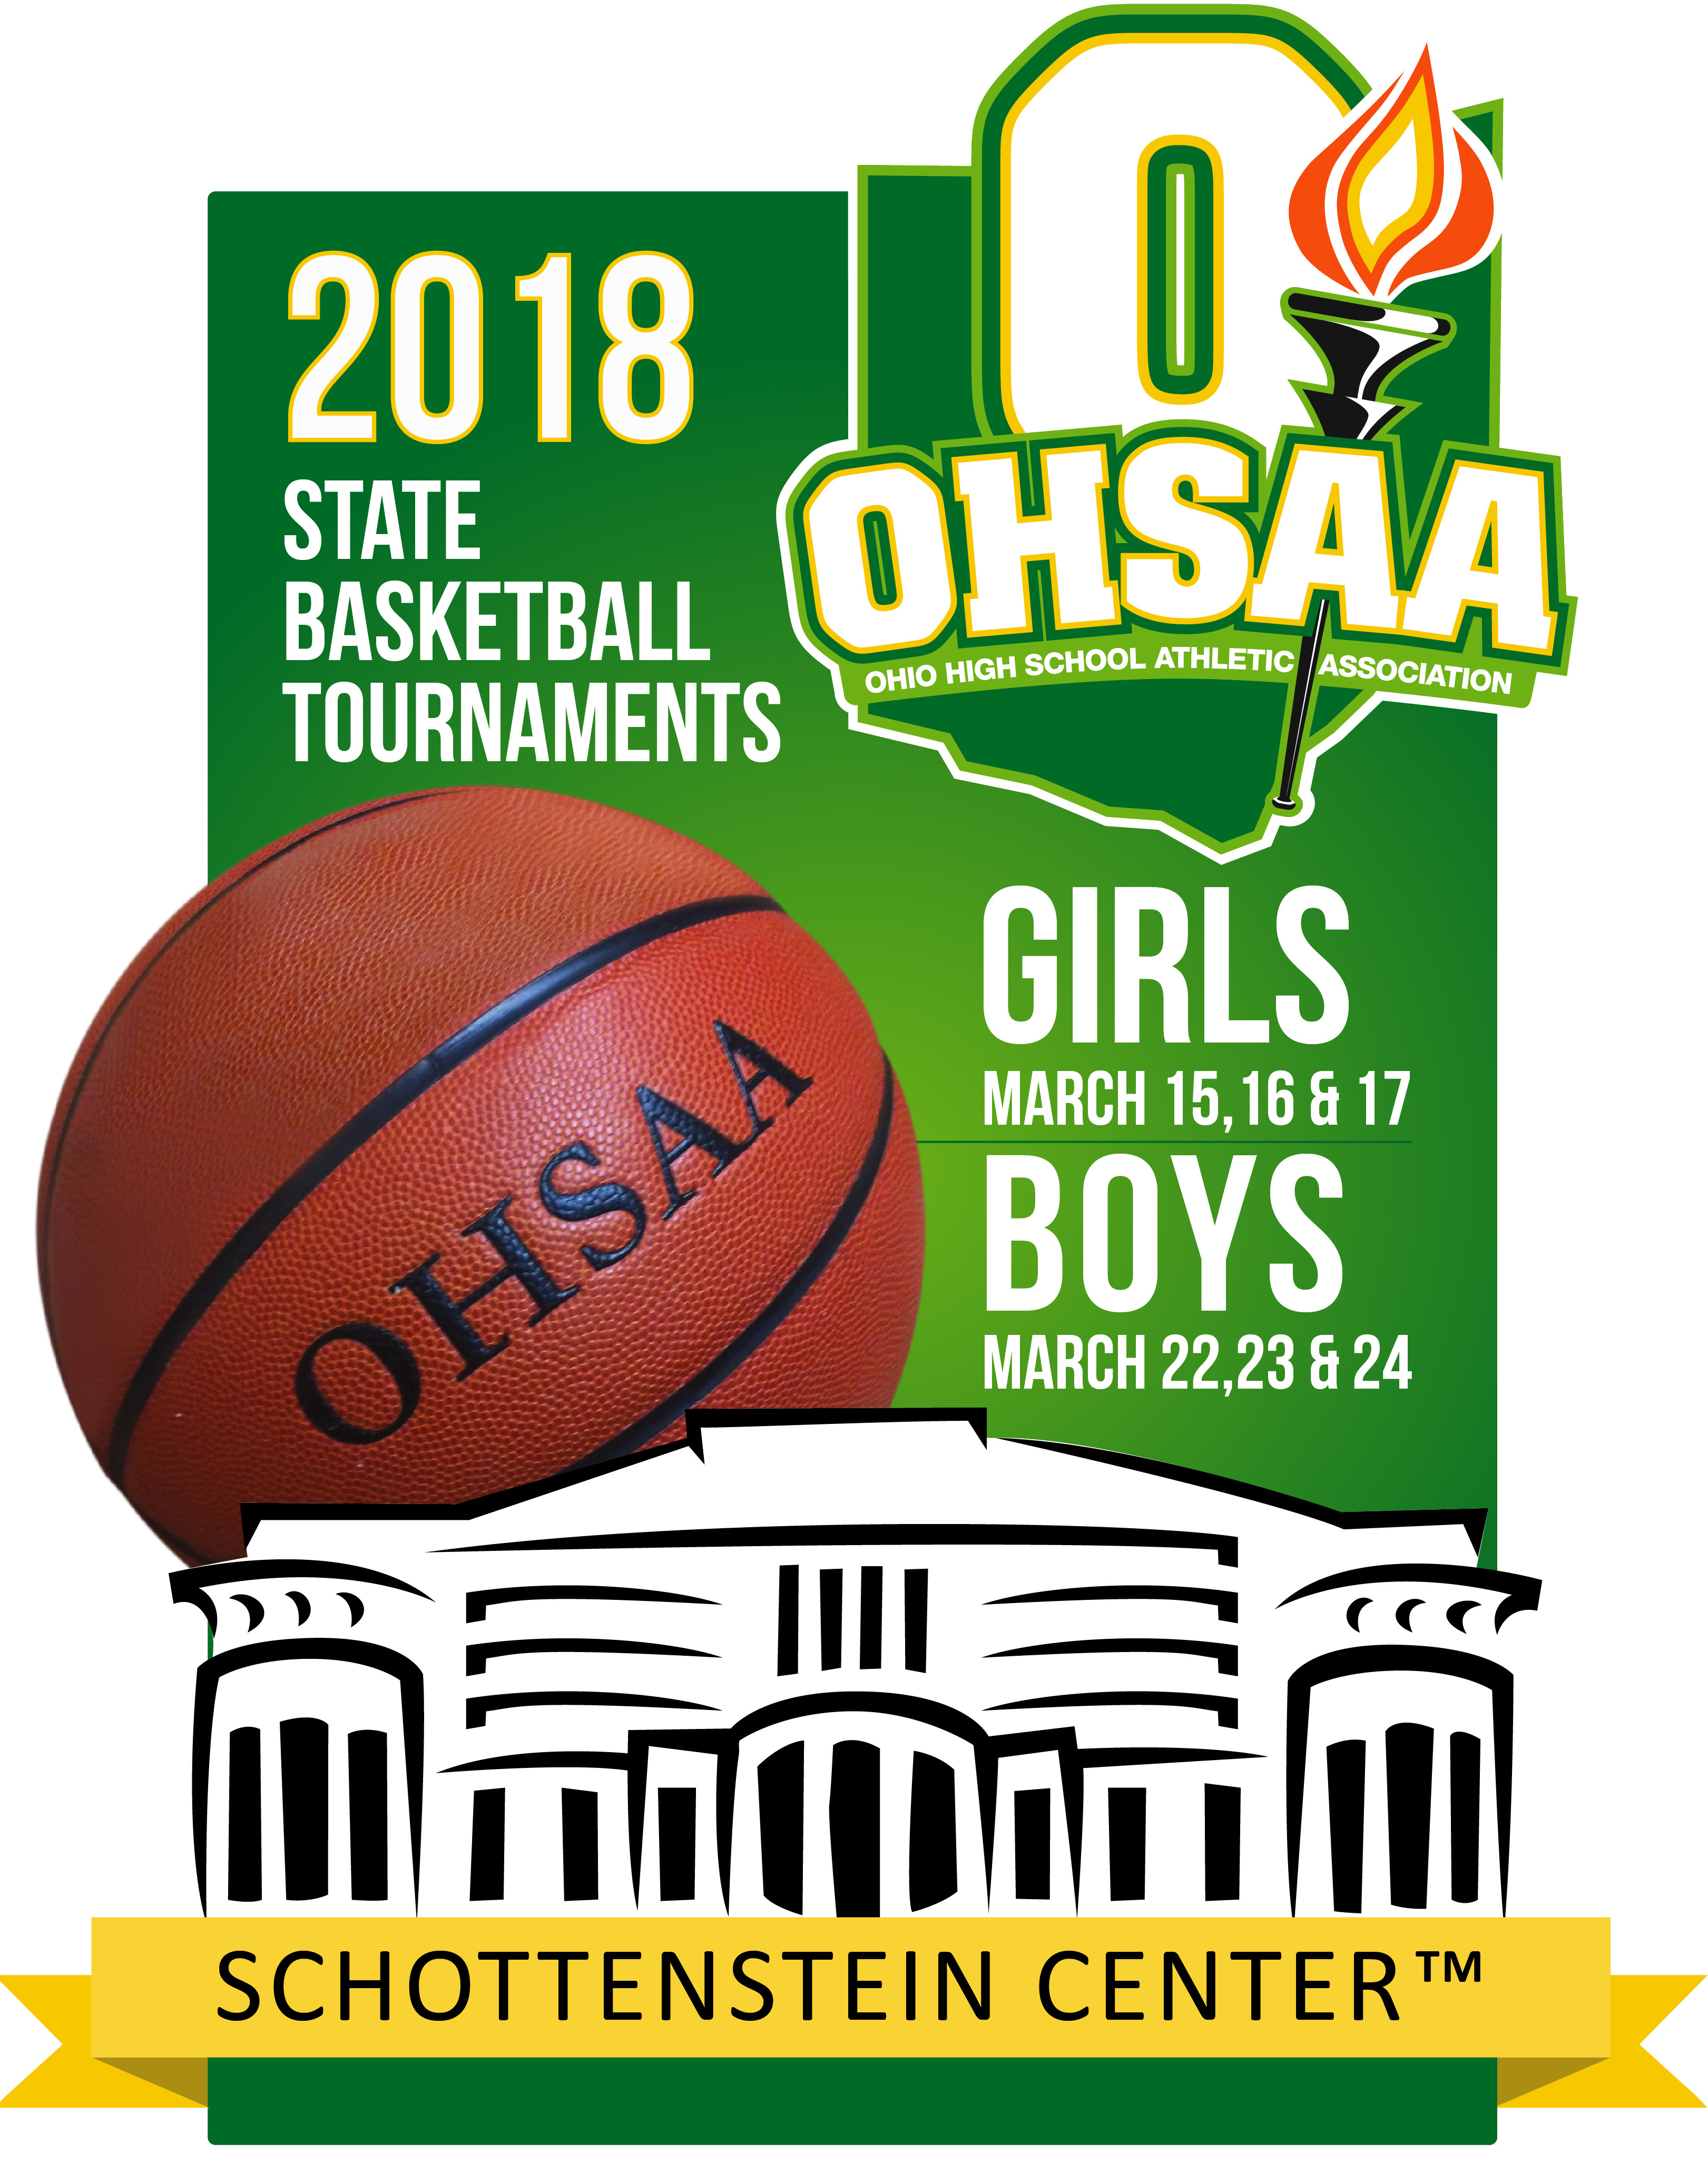 2018 OHSAA Girls Basketball State Tournament Coverage